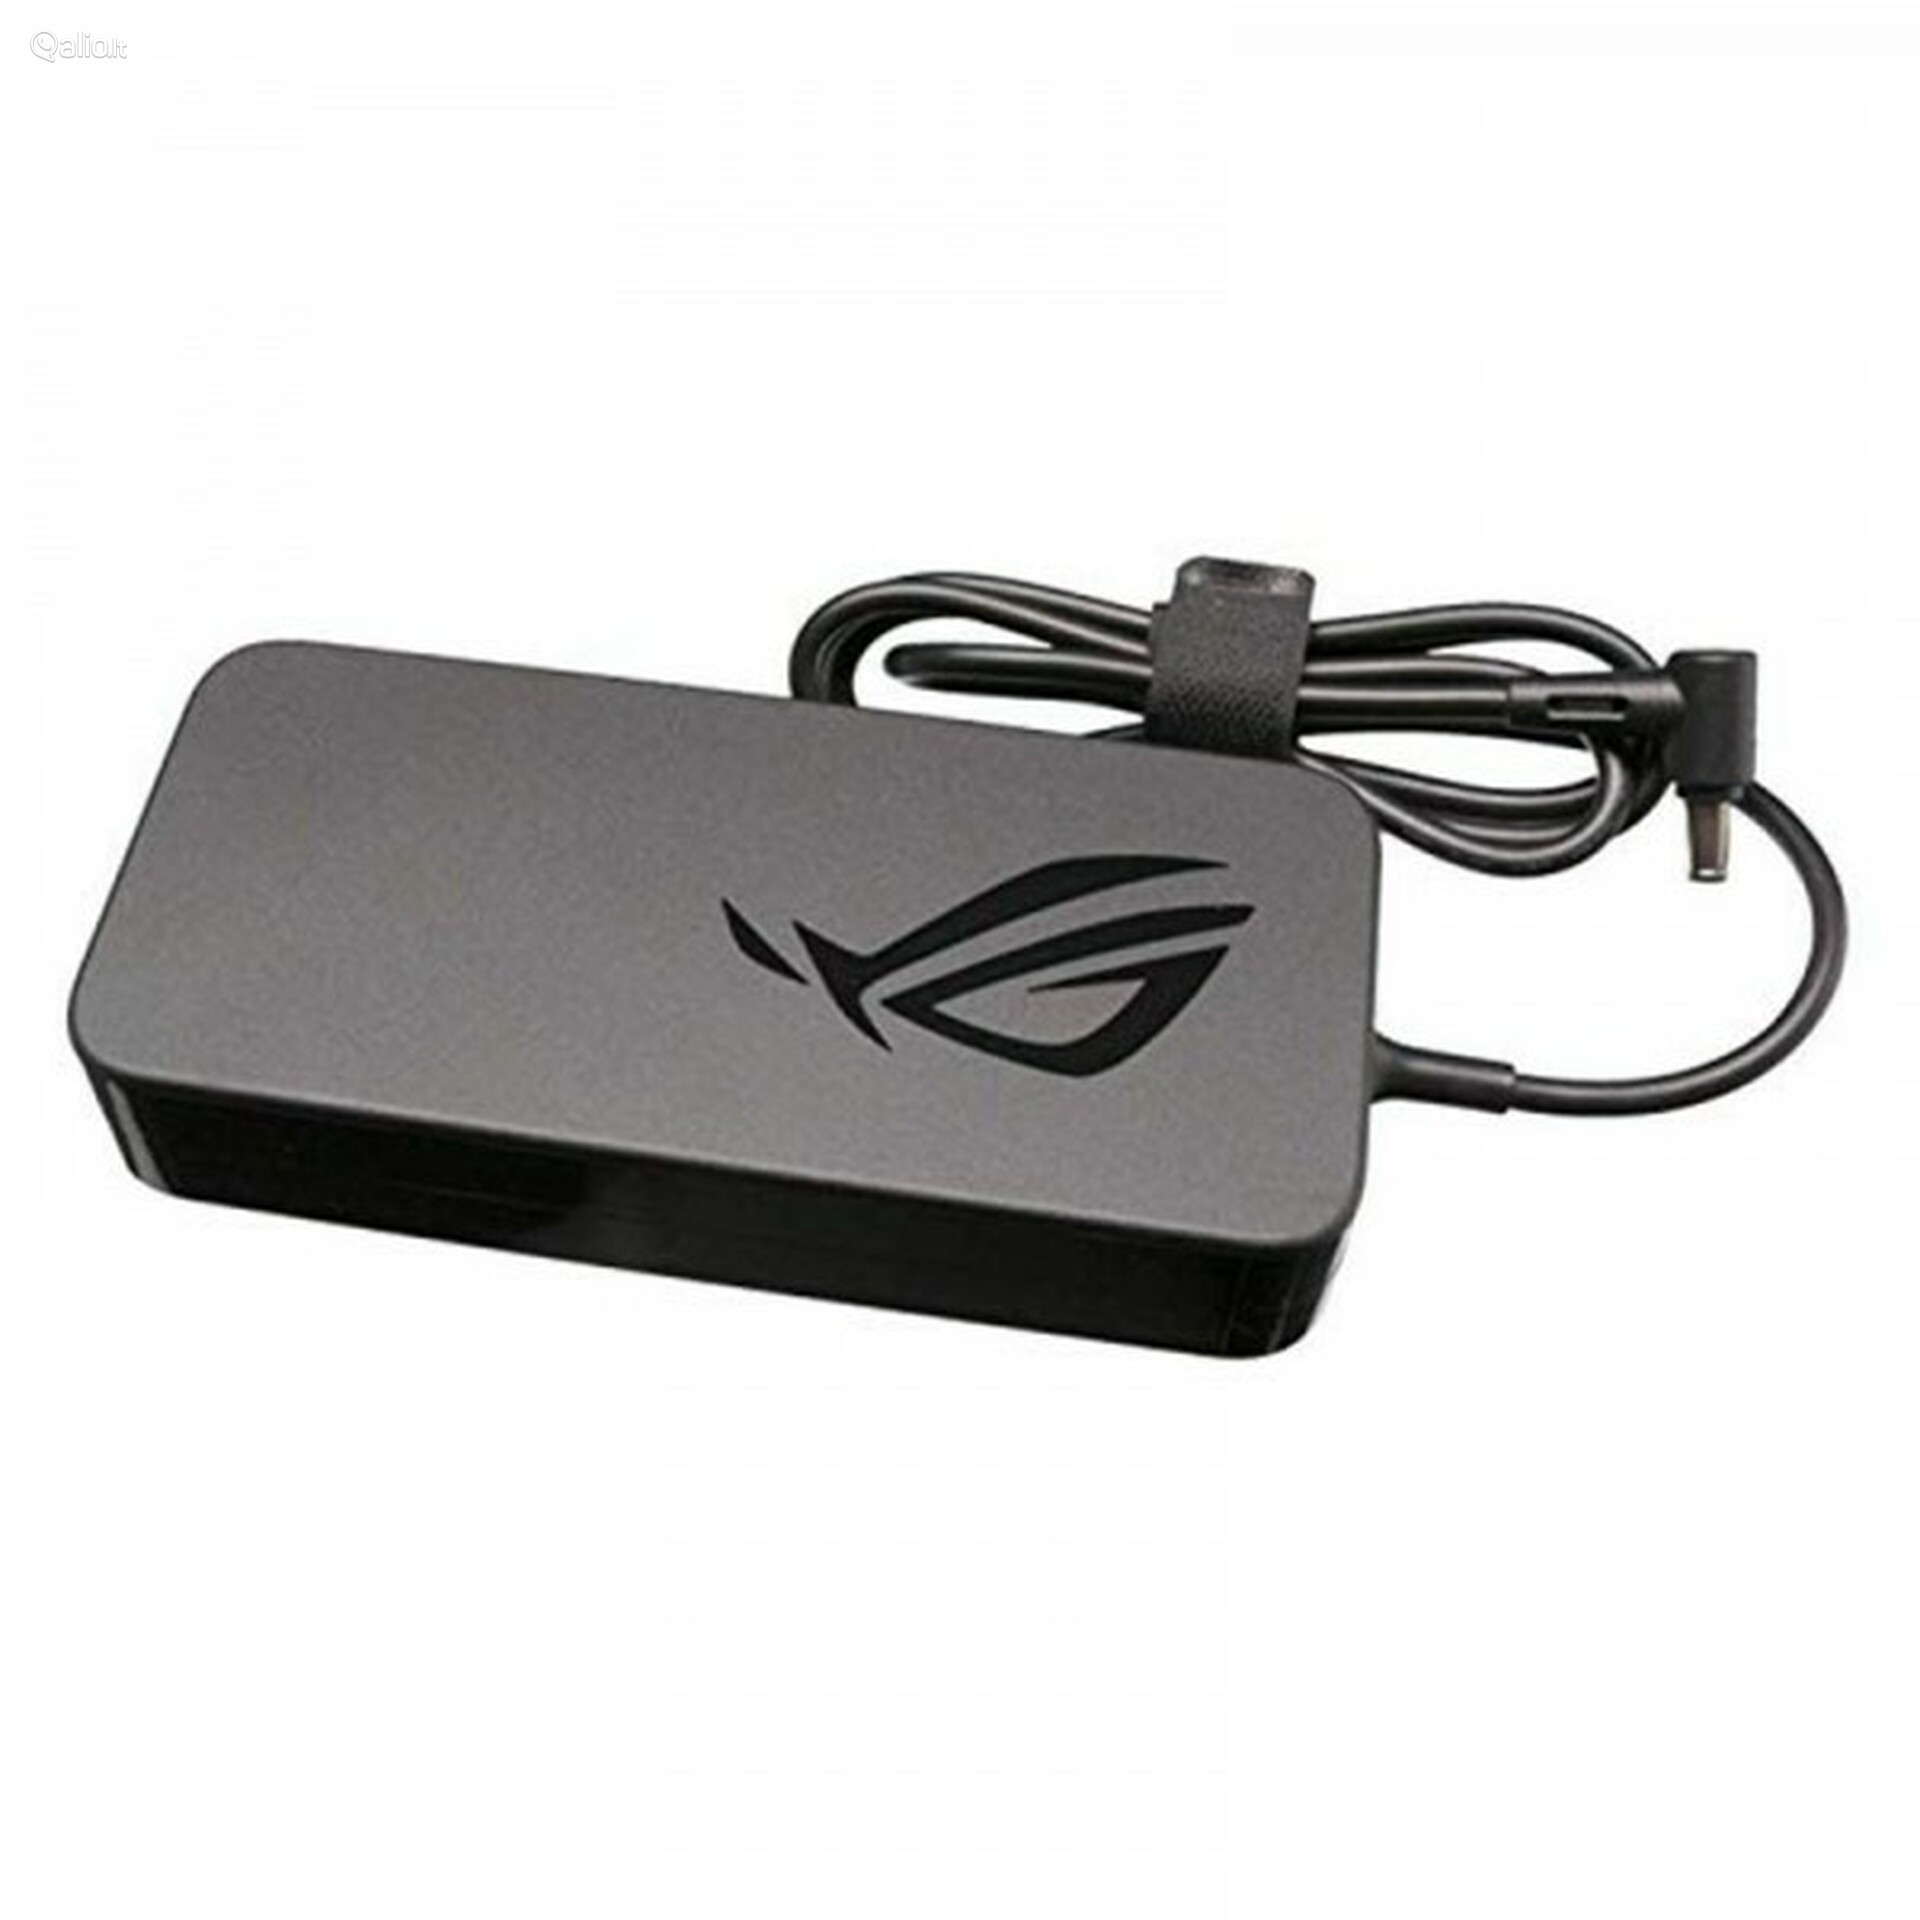 ASUS ADAPTER 180W 19.5V-9.23A A17-180P1A /ADP-180UB For ROG & TUF